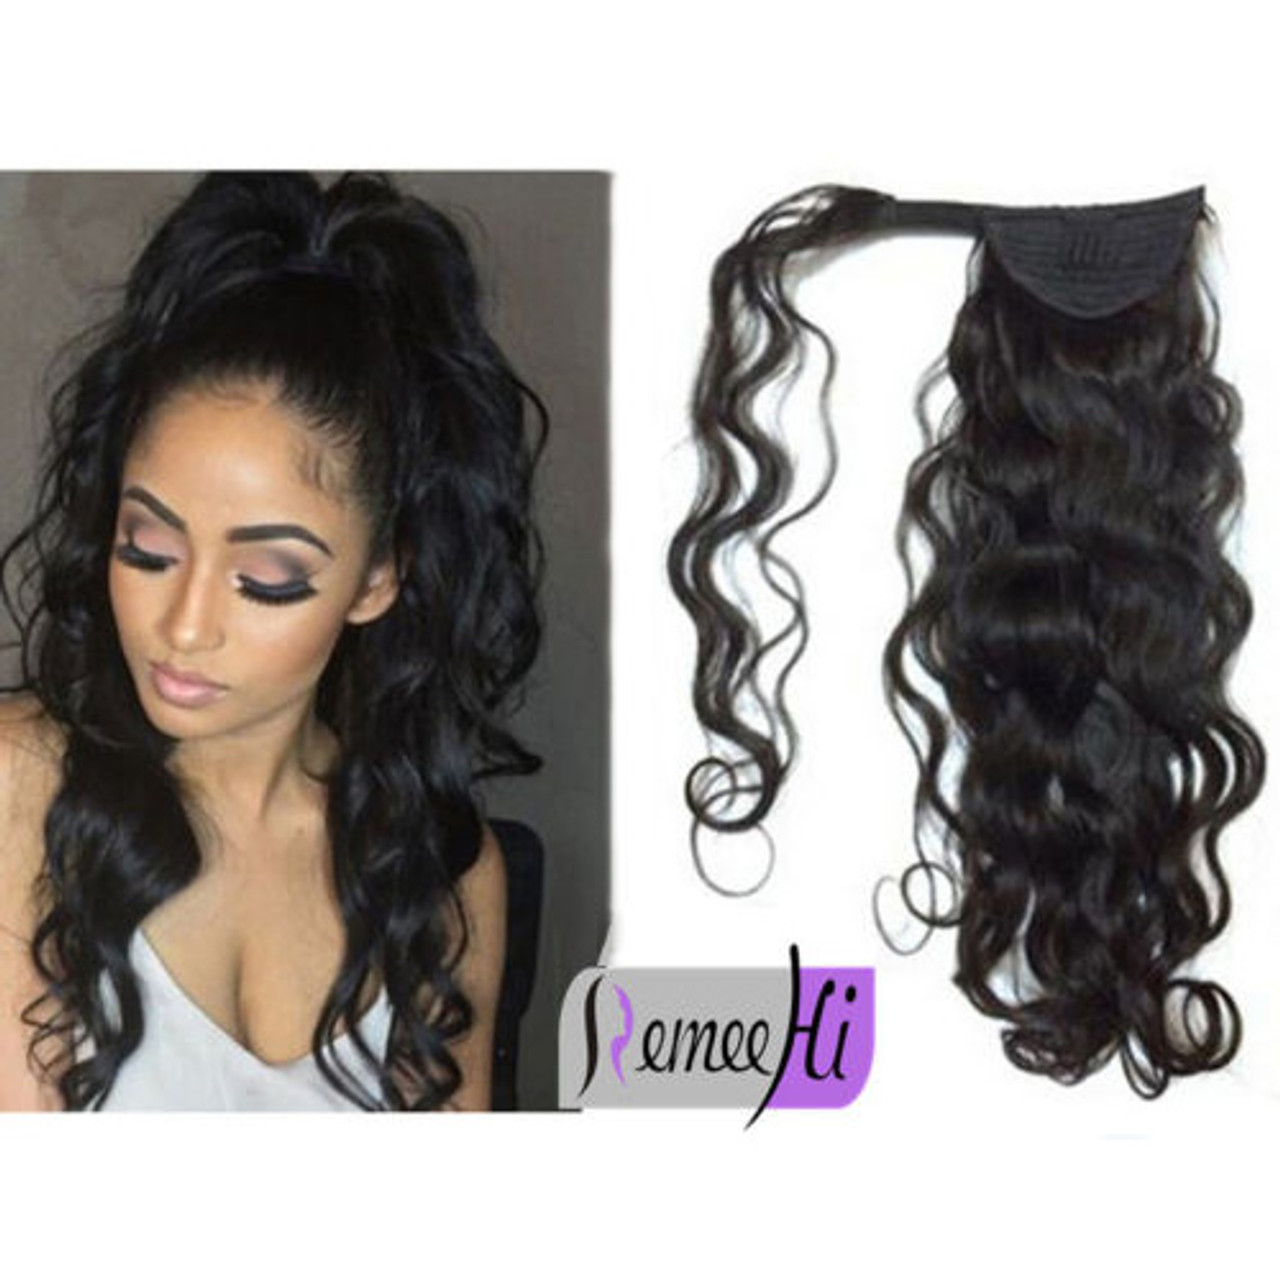 Remeehi straight remy human hair clip ponytails 100g human hair remeehi curly wave remy human hair clip in ponytails 100g human hair extensions pmusecretfo Gallery